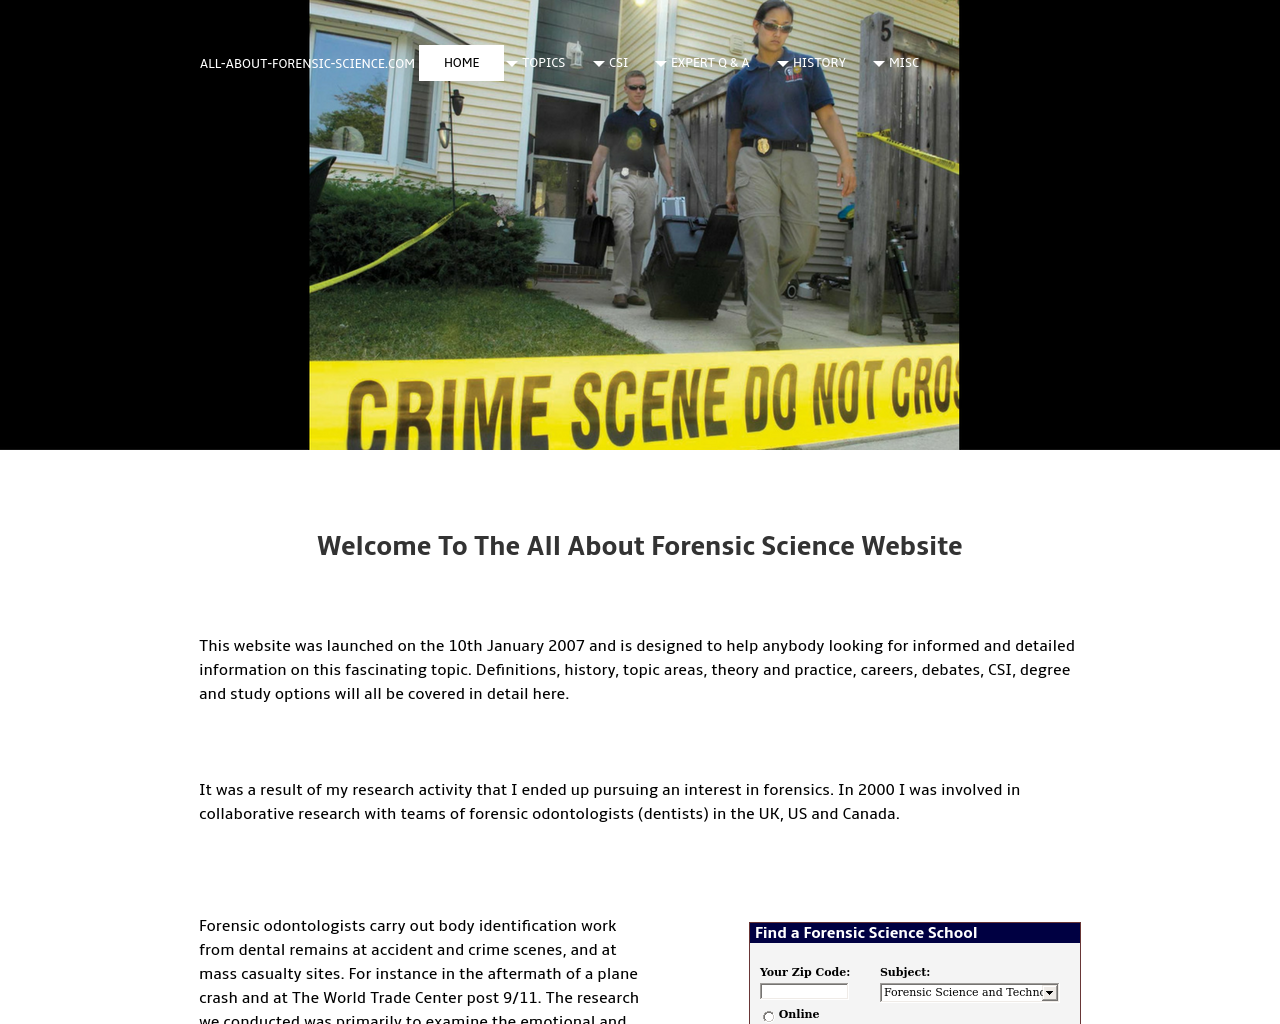 All-About-Forensic-Science-Advertising-Reviews-Pricing